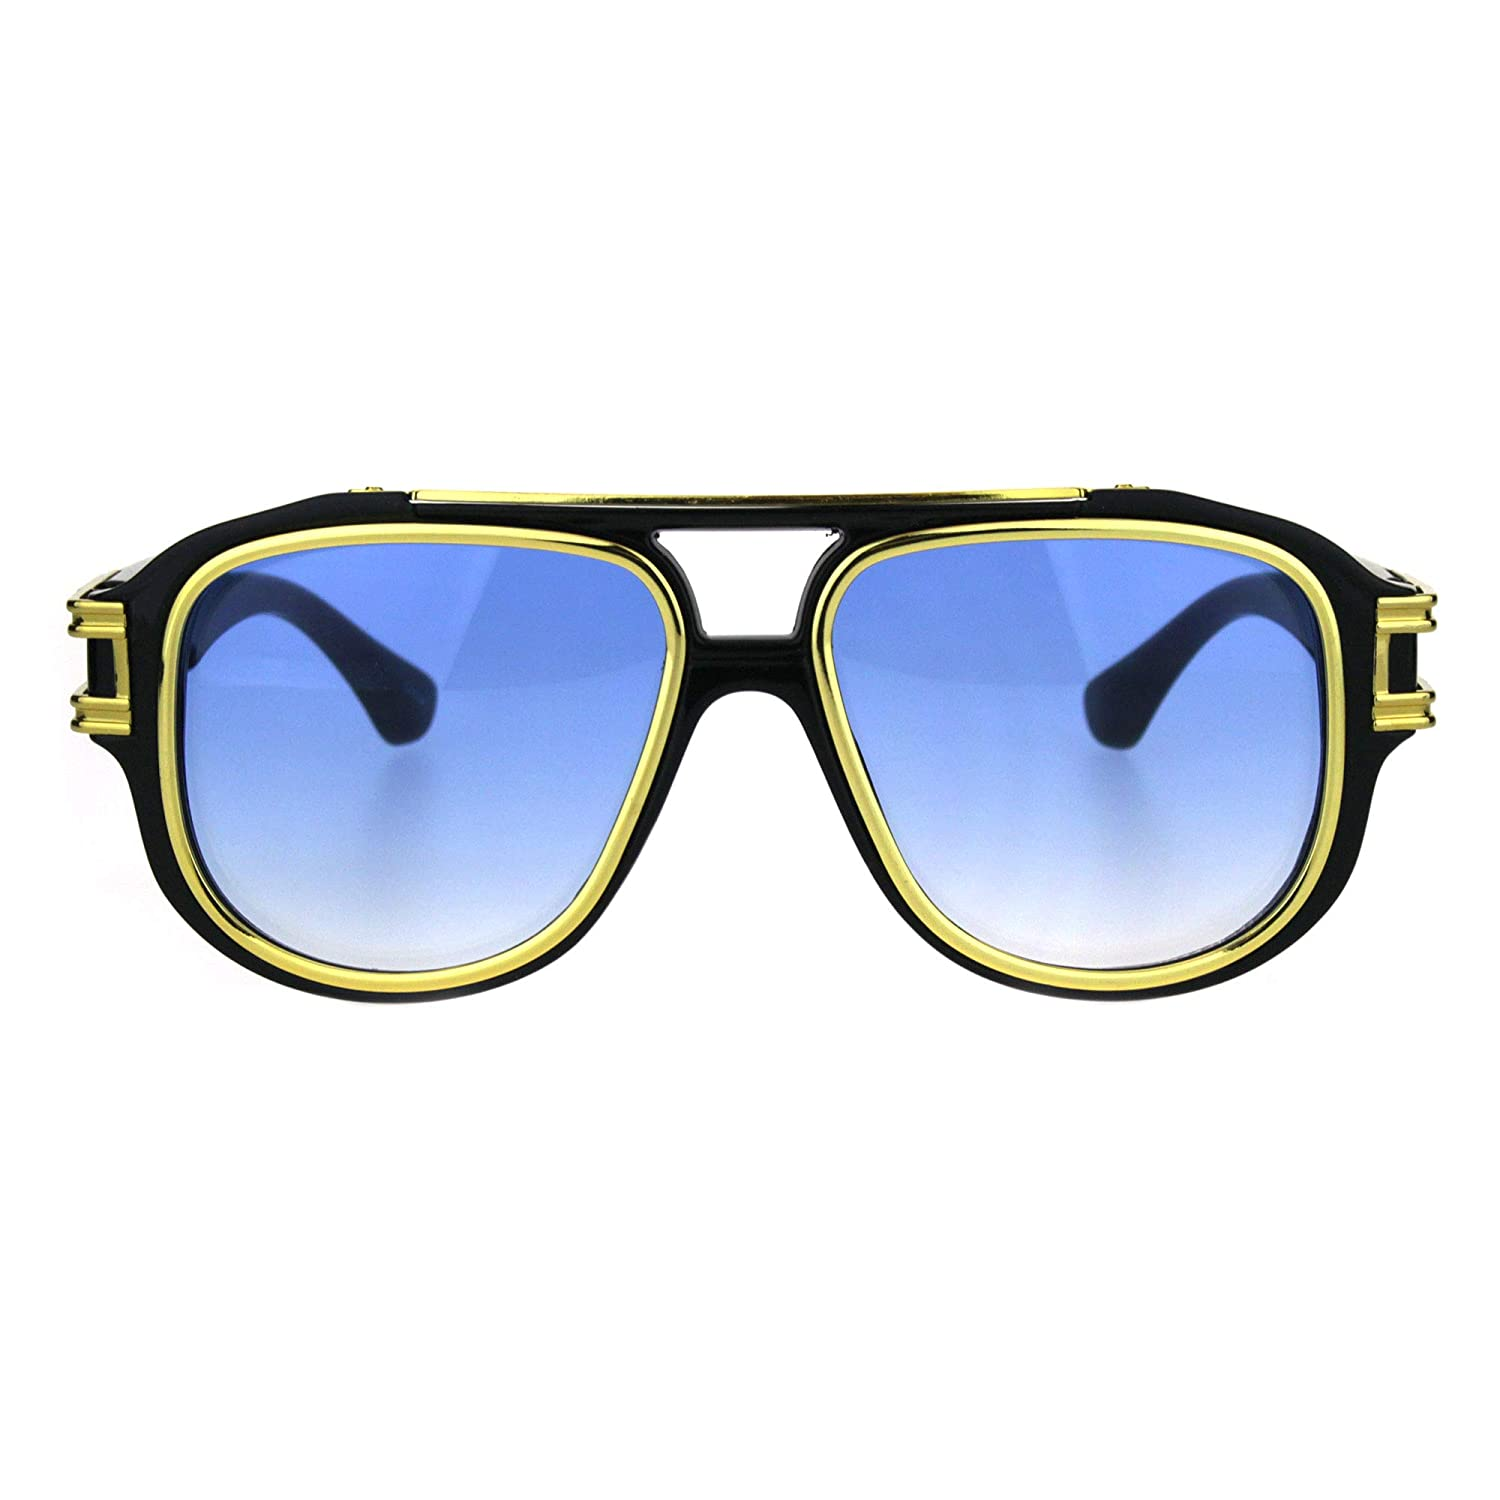 4c80ee24a9 Mens vegas pimp racer retro vintage plastic sunglasses black gold blue  clothing jpg 1500x1500 Mens plastic